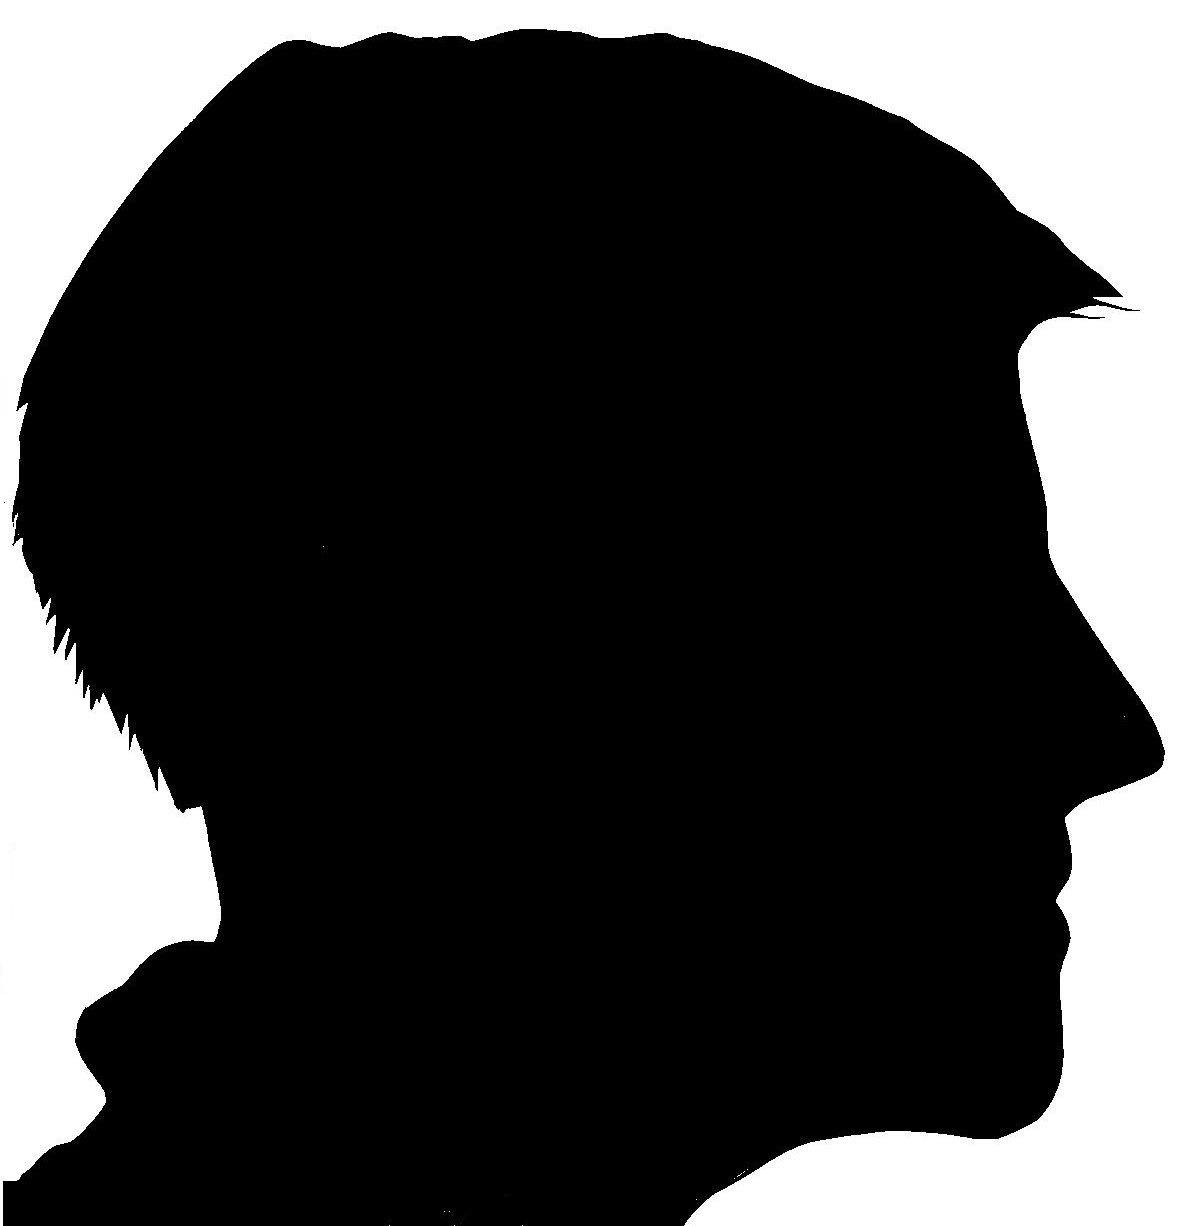 Silhouette of a man's face